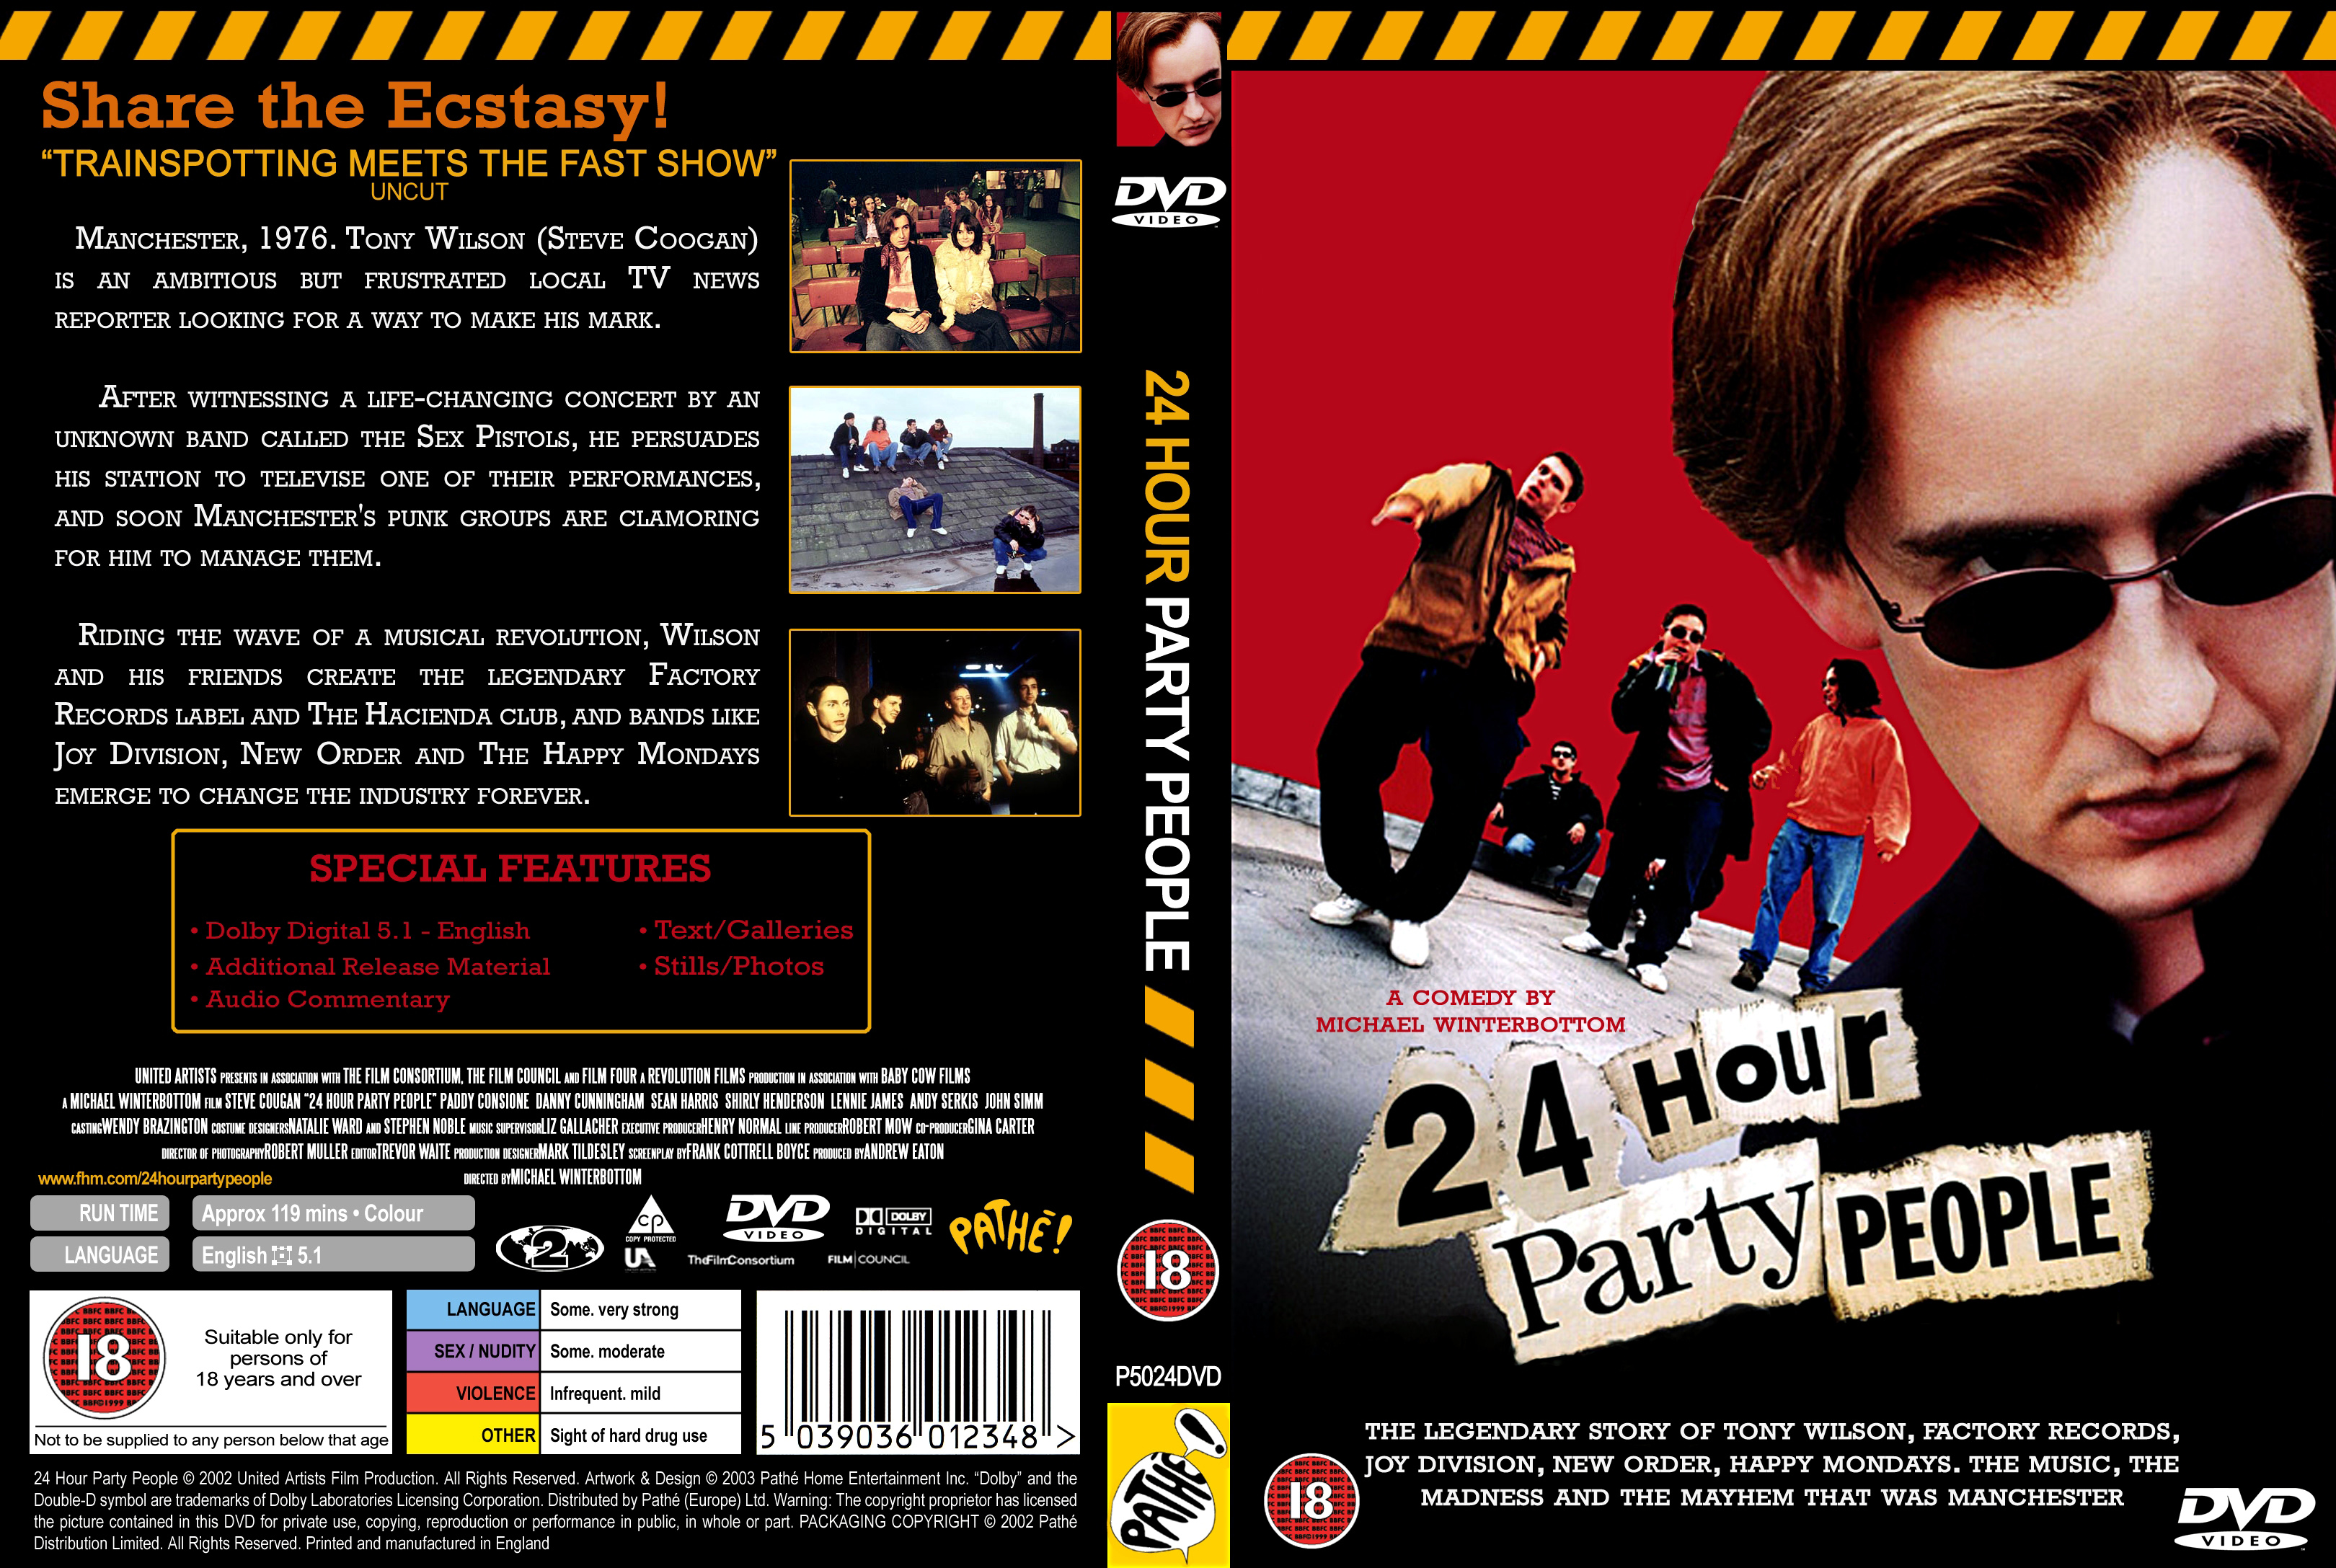 northern film 24 hour party people essay 24 hour party people it became a humorous essay about misinforming  a film by winterbottom is in danger of not getting the recognition it deserves.